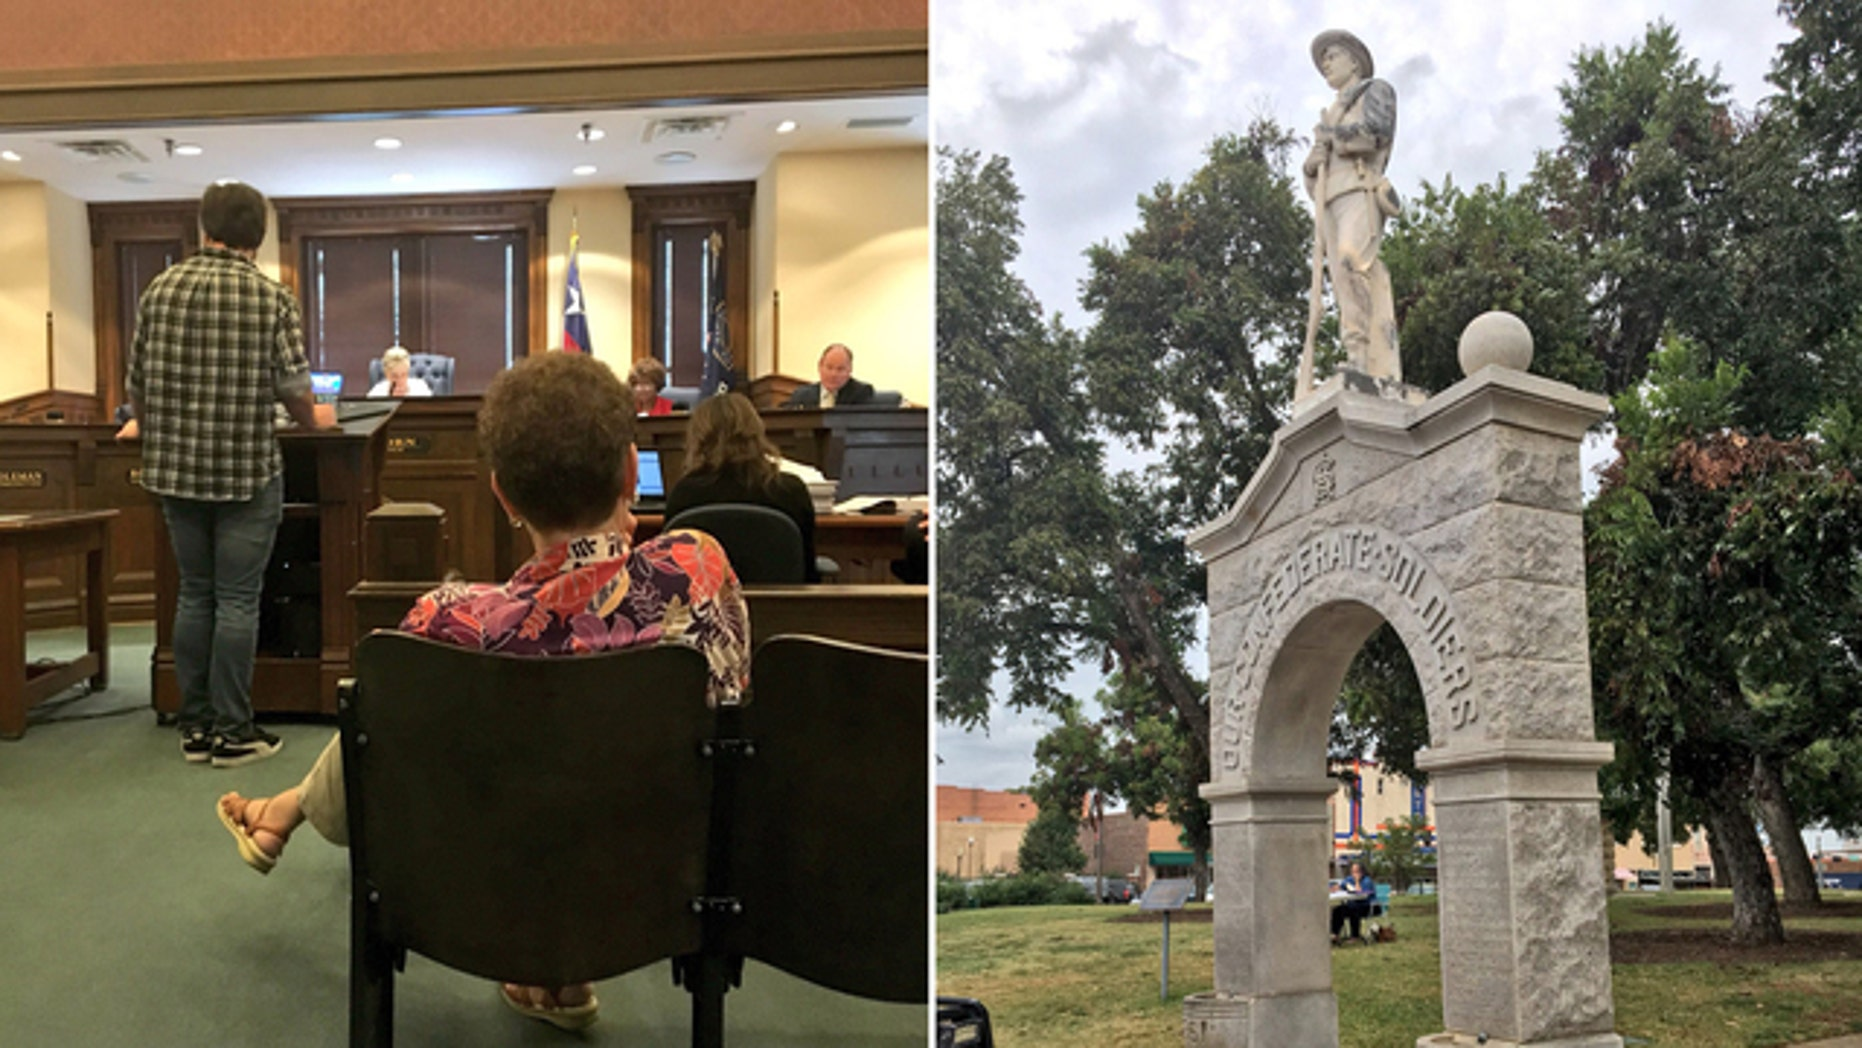 Denton County residents debated how to handle a Confederate monument on Tuesday.